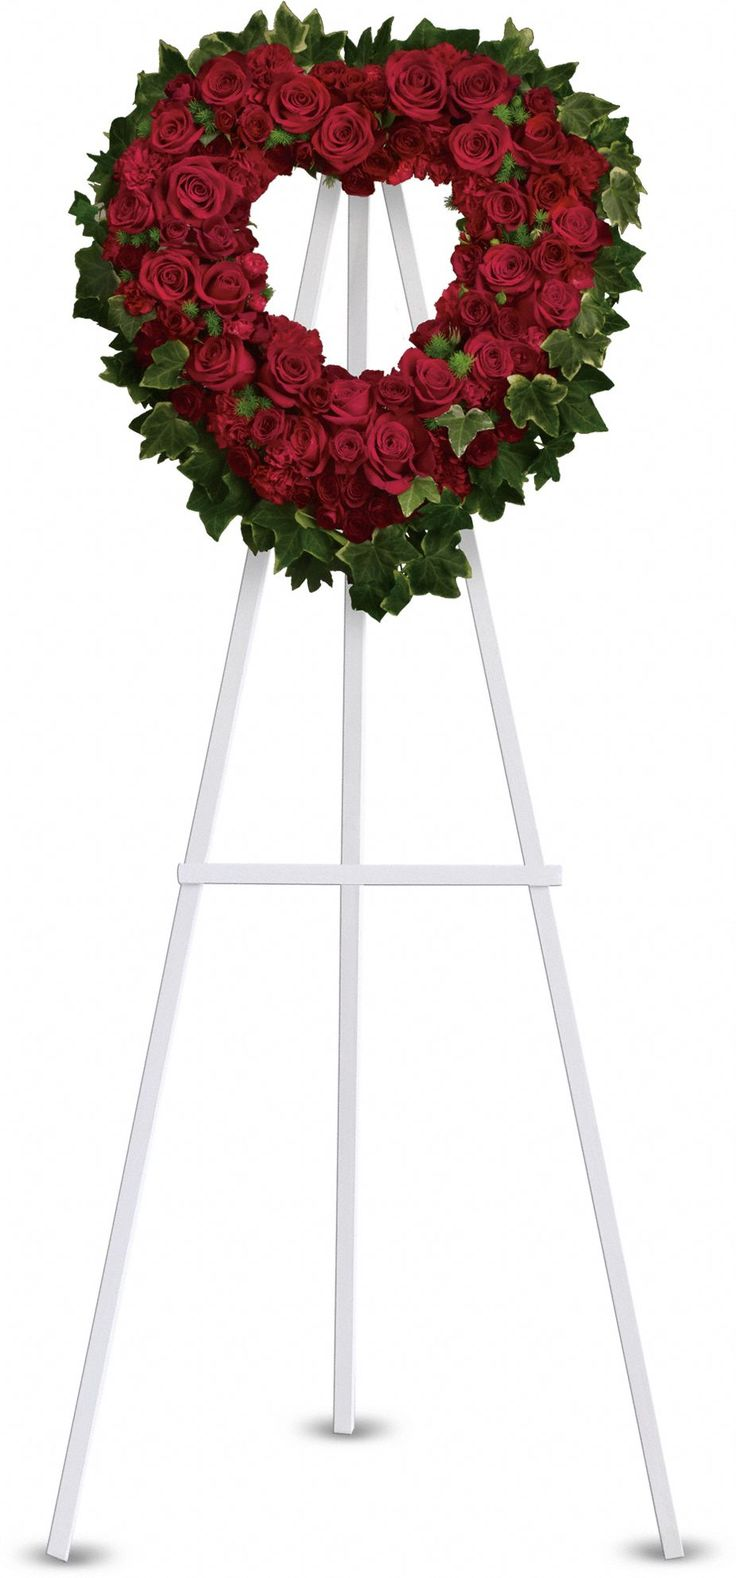 10 best sympathy arrangements images on pinterest funeral flowers red roses and carnations are accented with ming fern and variegated ivy on an open heart shaped wreath izmirmasajfo